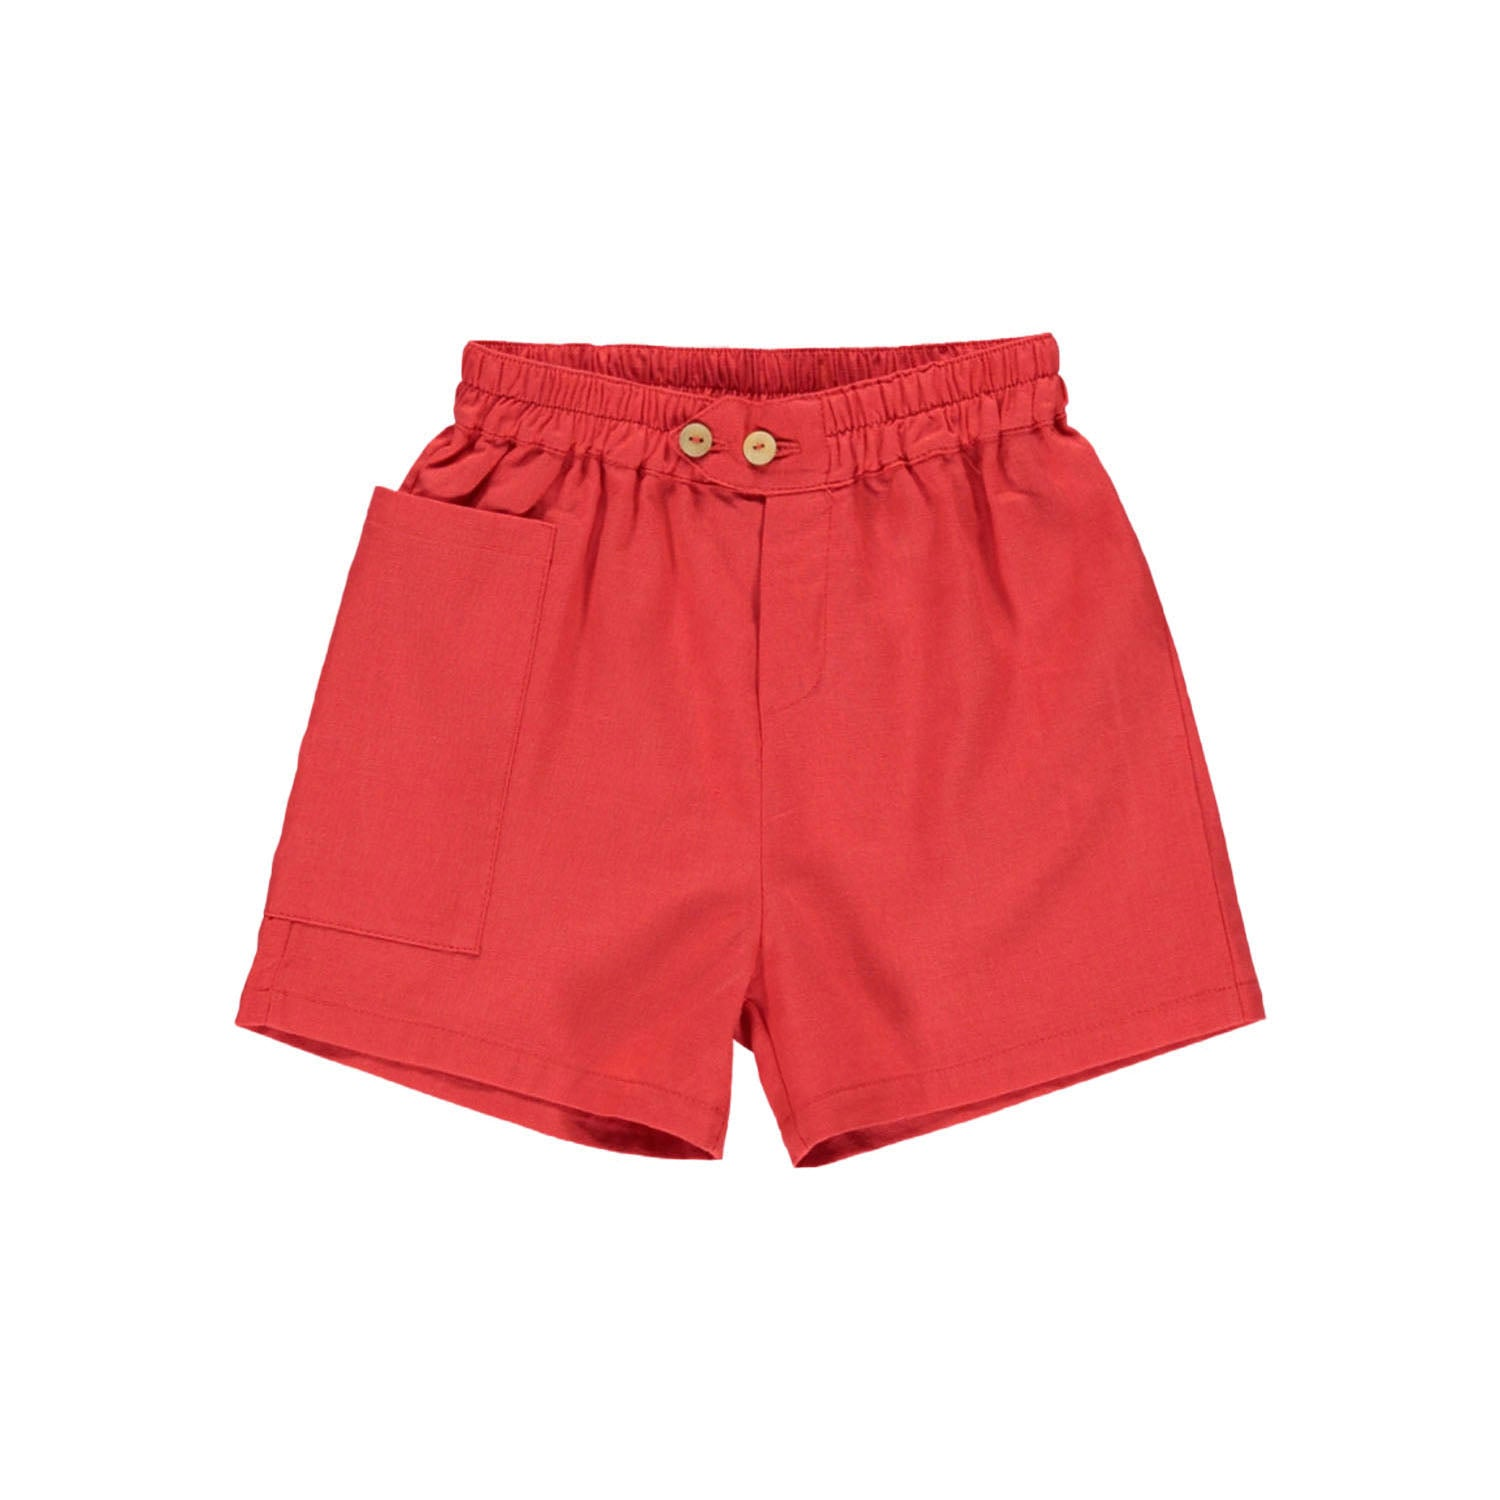 Brick Red High-Waisted Shorts